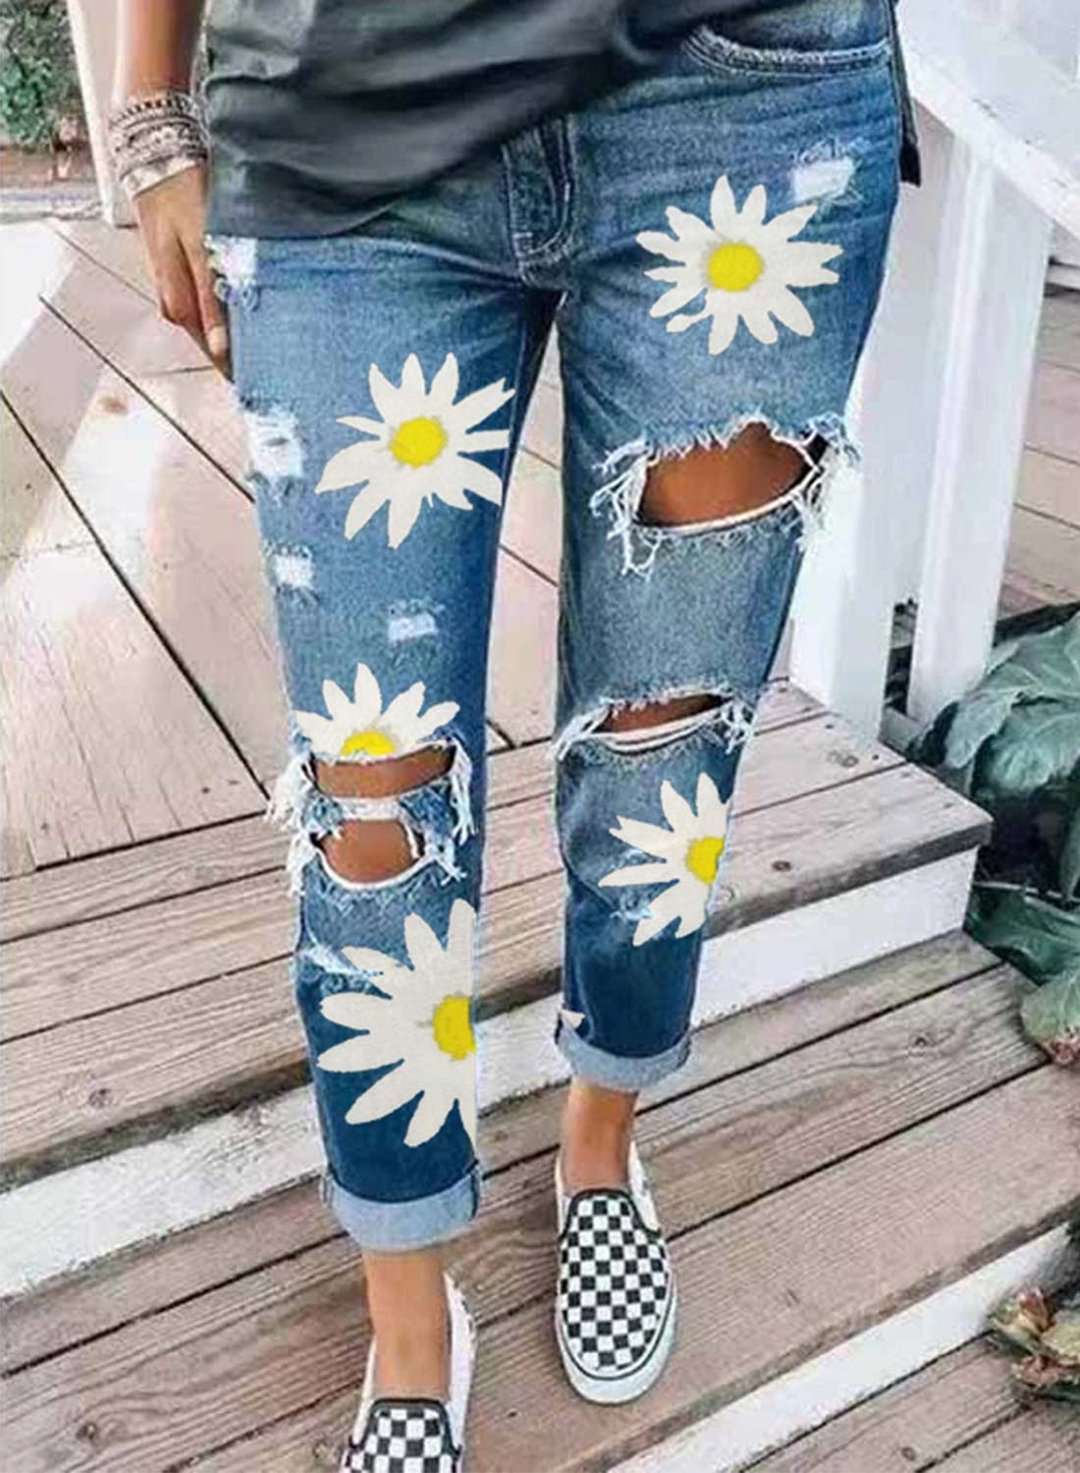 Sky Blue Women's Jeans High Waist Daisy Ripped Jeans LC781851-4